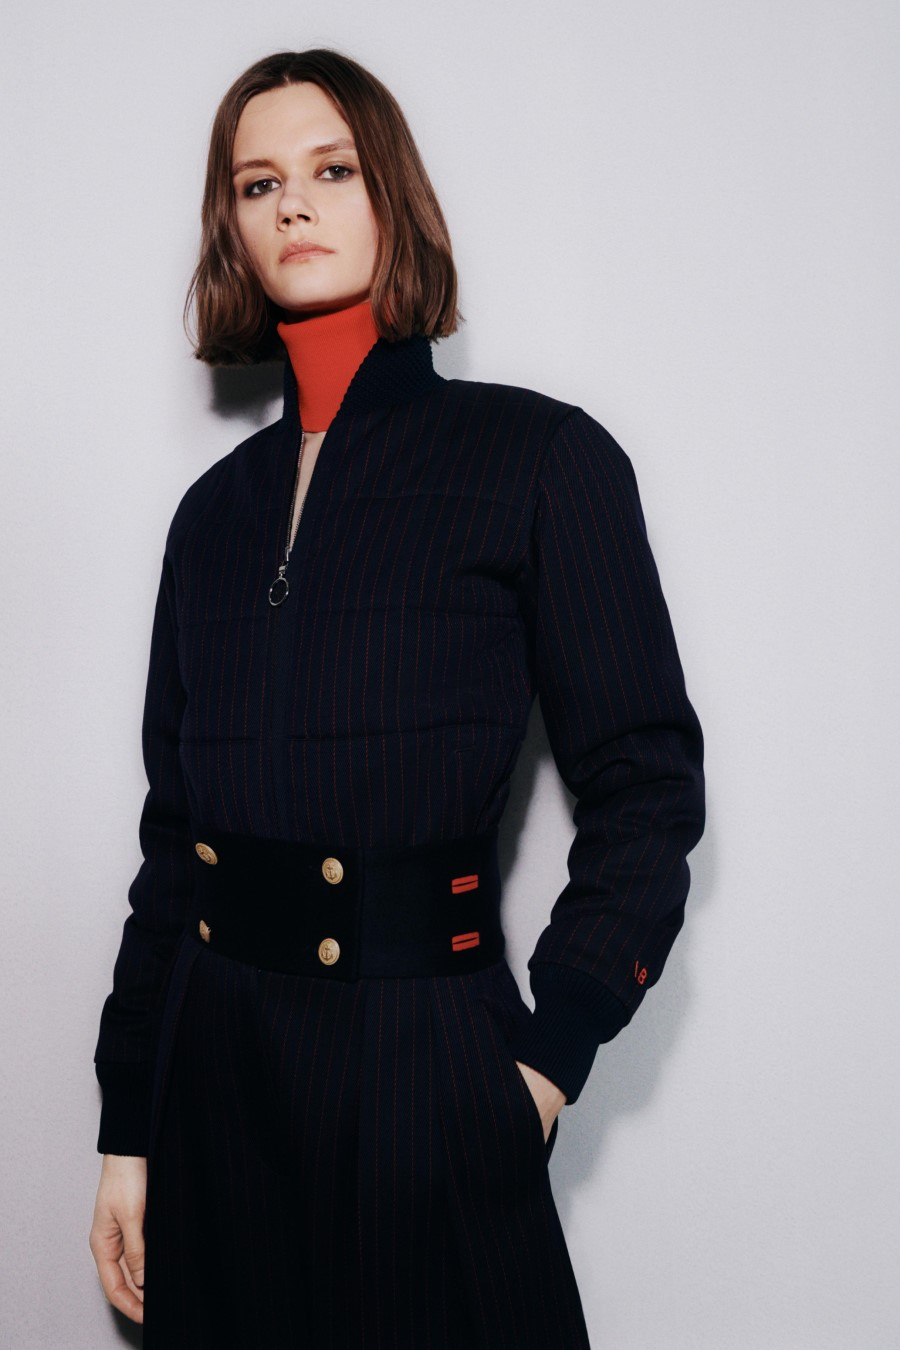 Victoria Beckham Fall Winter 2021 - London Fashion Week